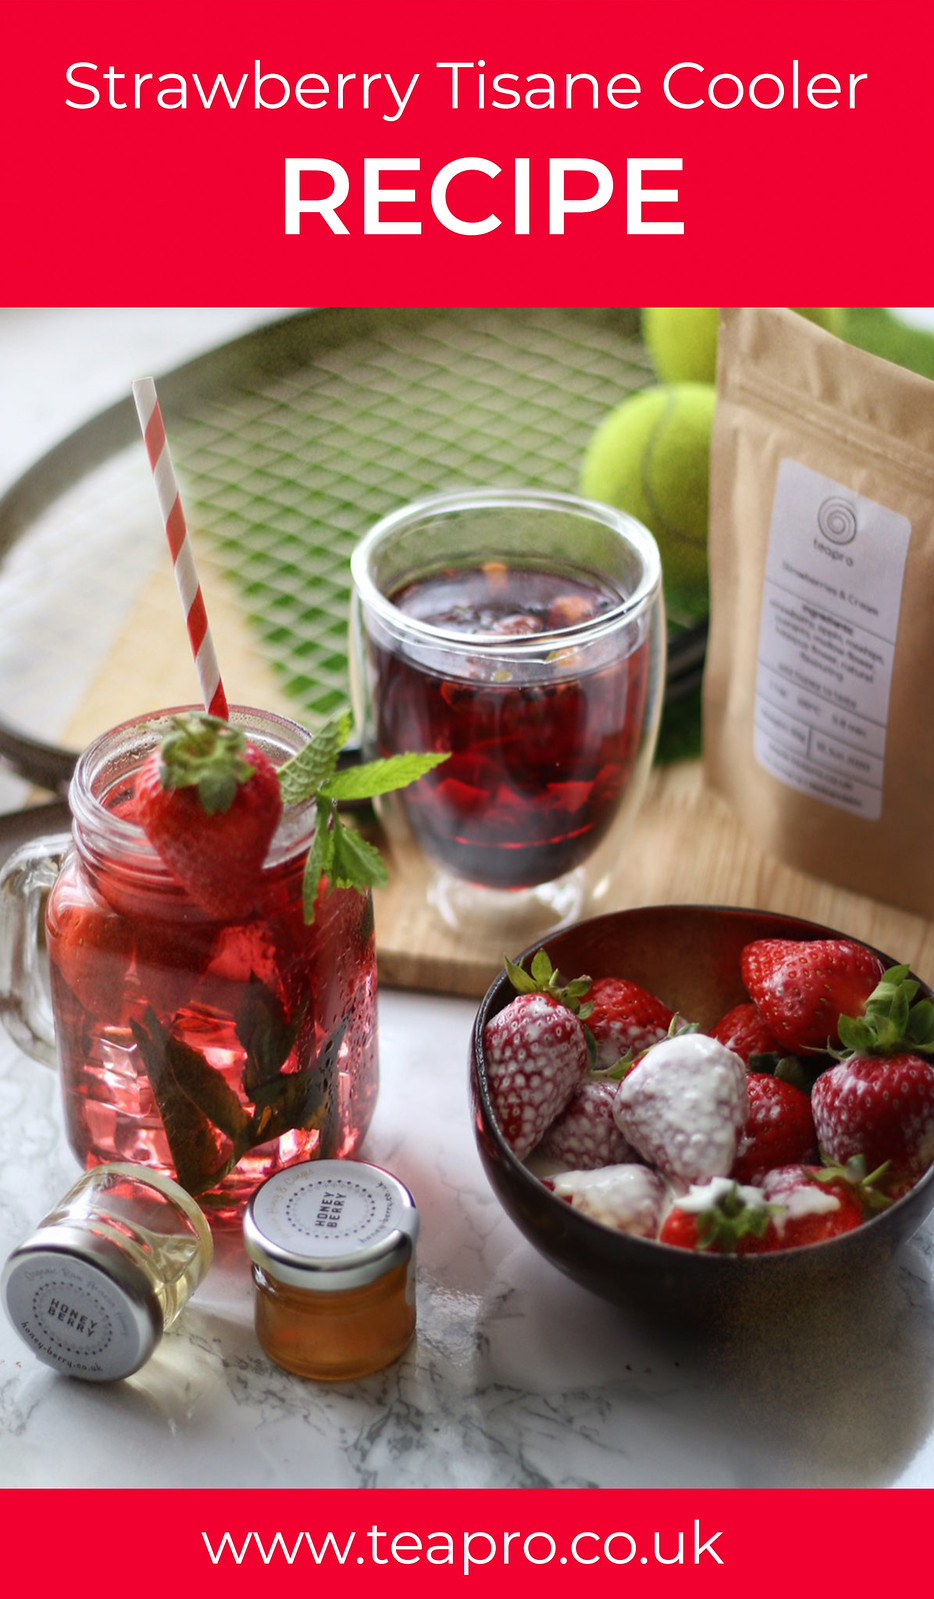 Teapro Strawberries and Cream Tisane Cooler Recipe